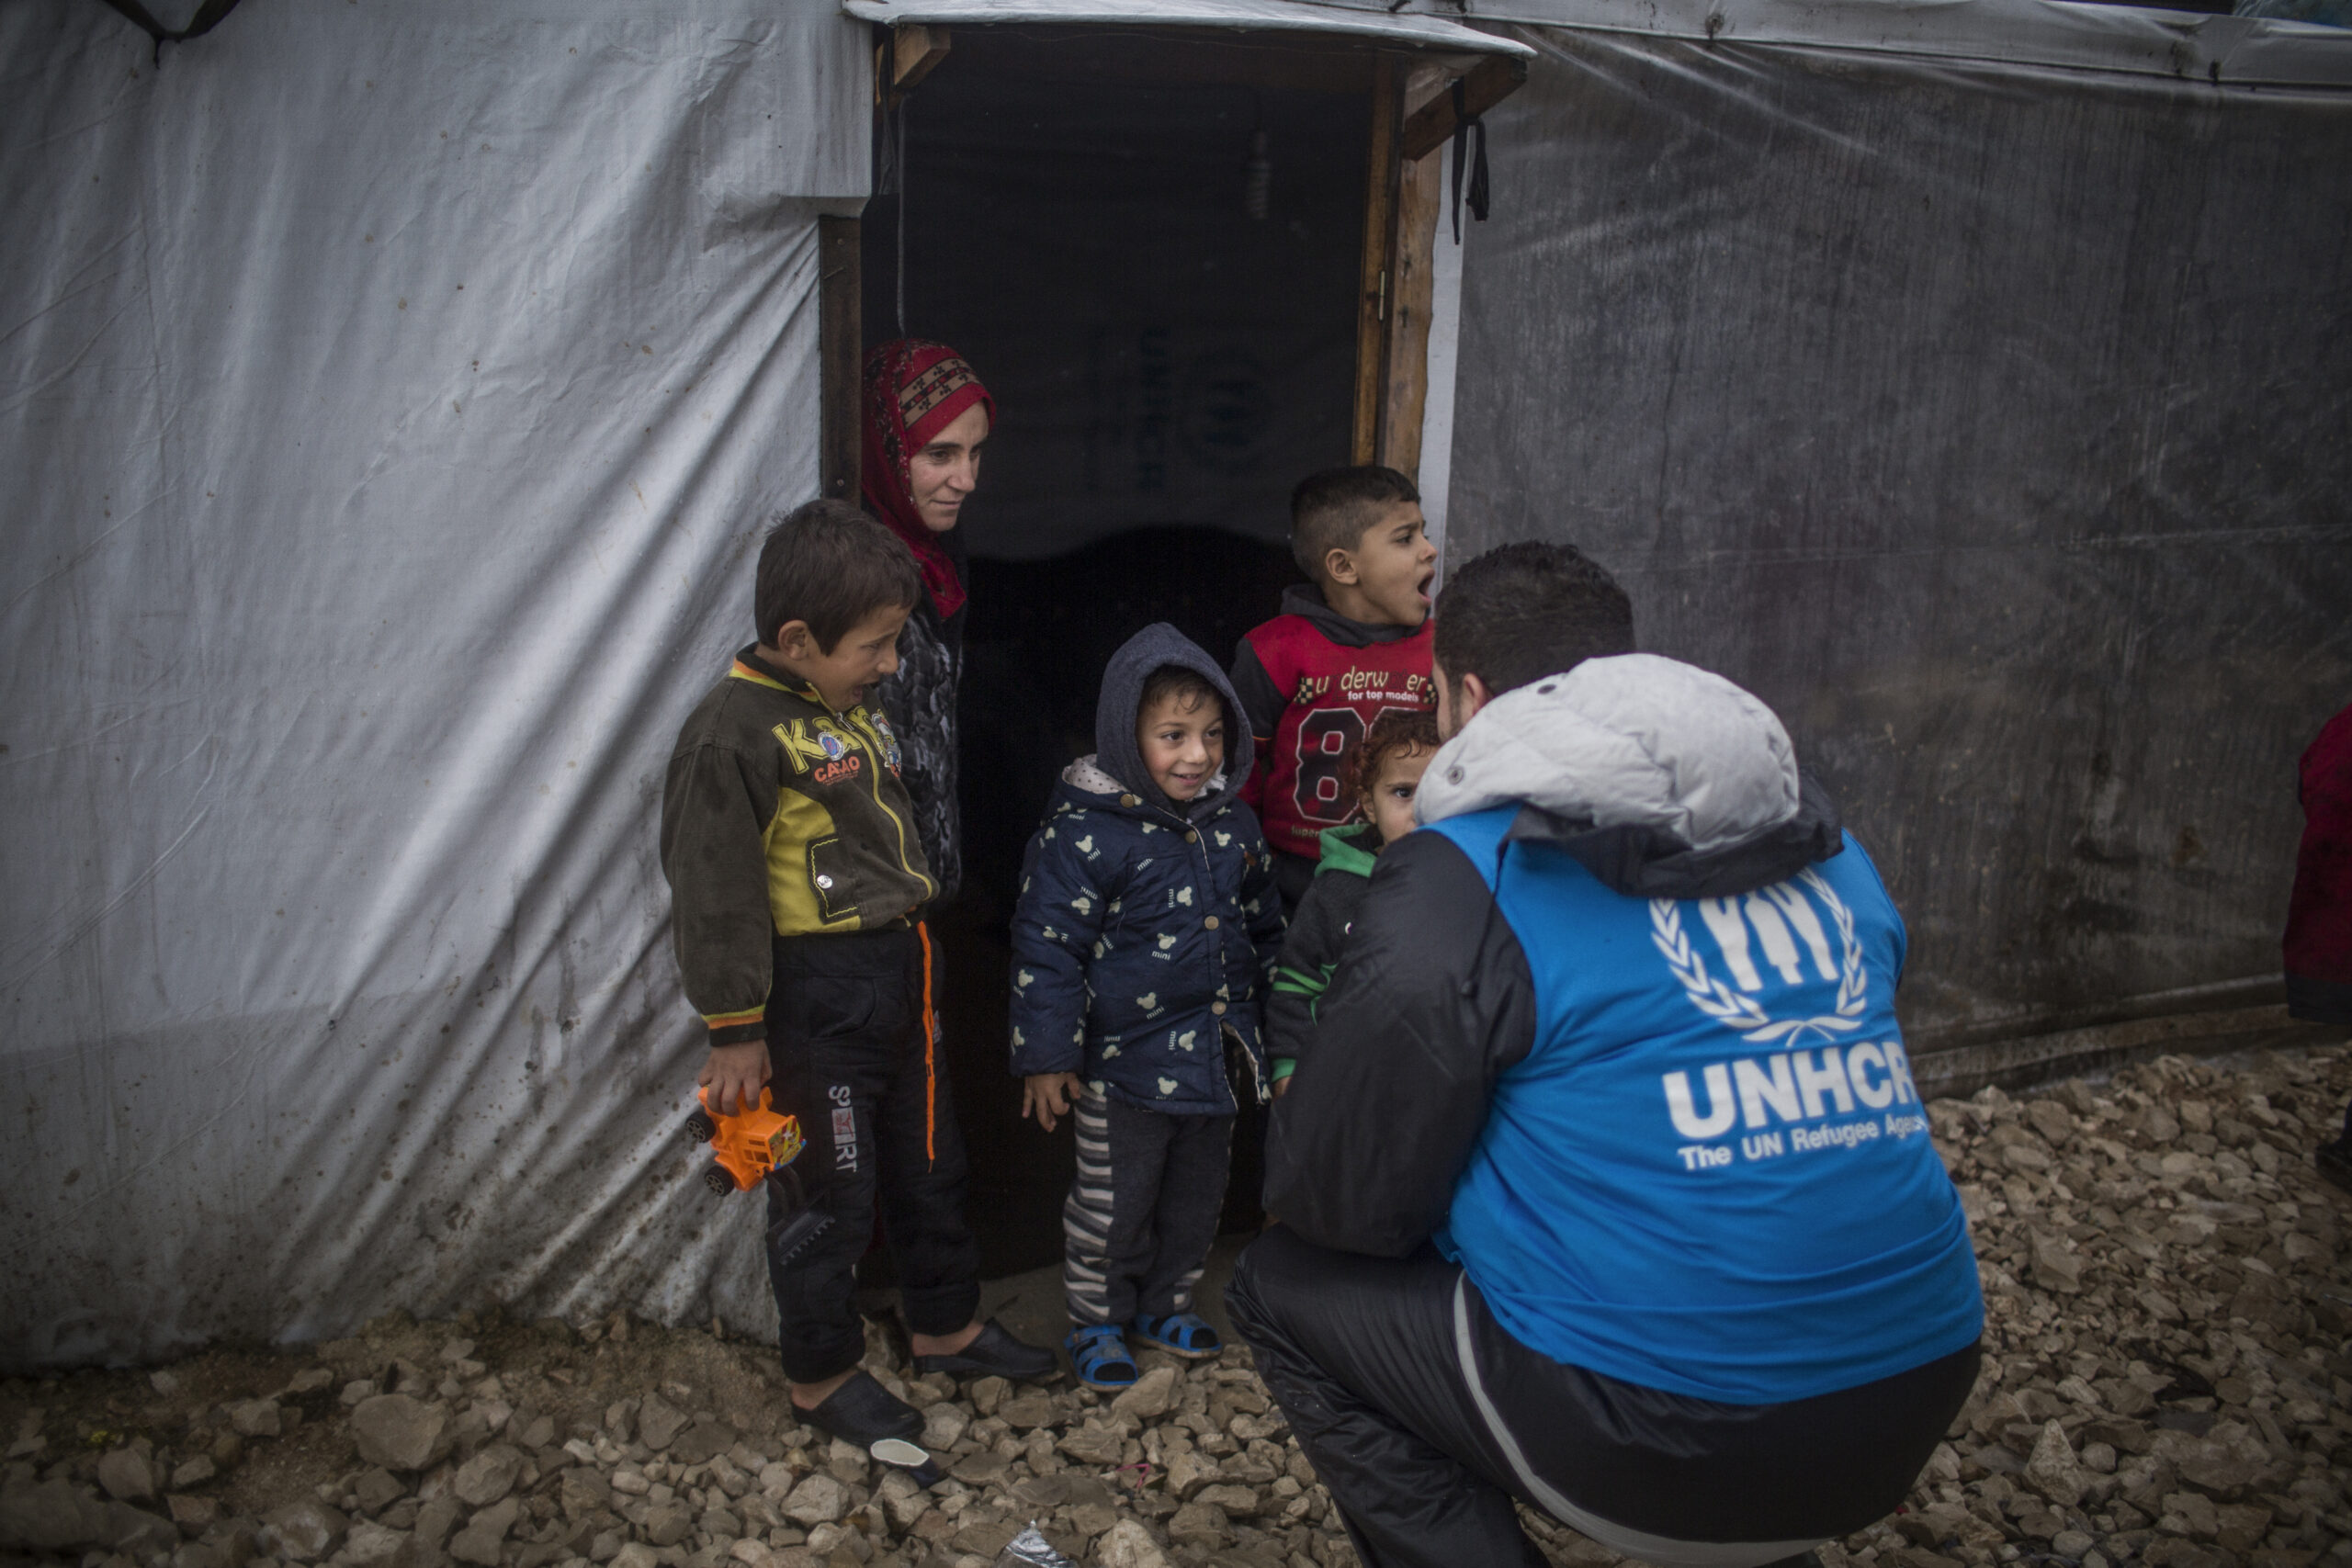 Lebanon. After Storm Norma, extreme winter weather affects Syrian refugees